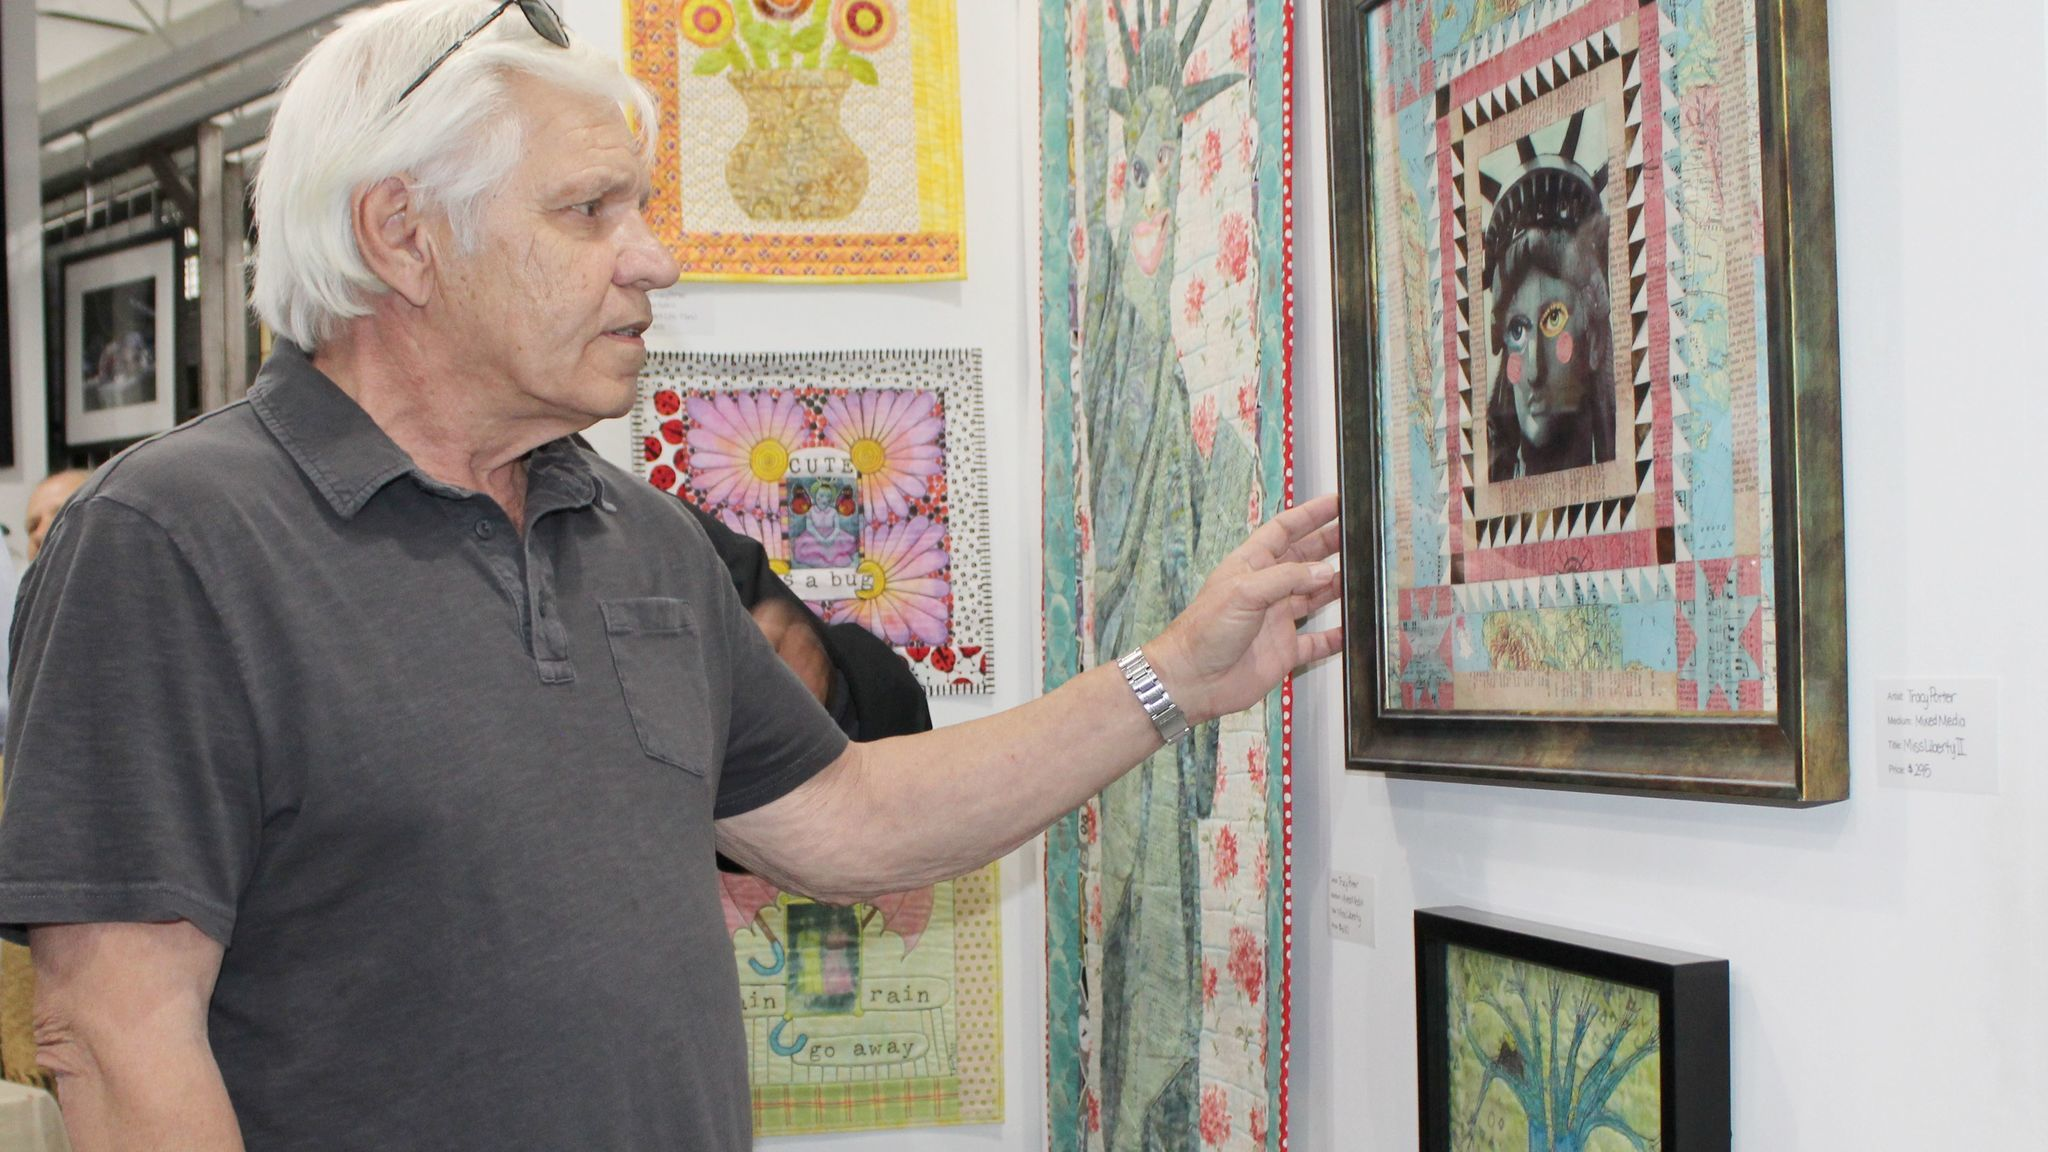 Mike LaRosa of Ramona looks at one of the works of art featured in the gallery.